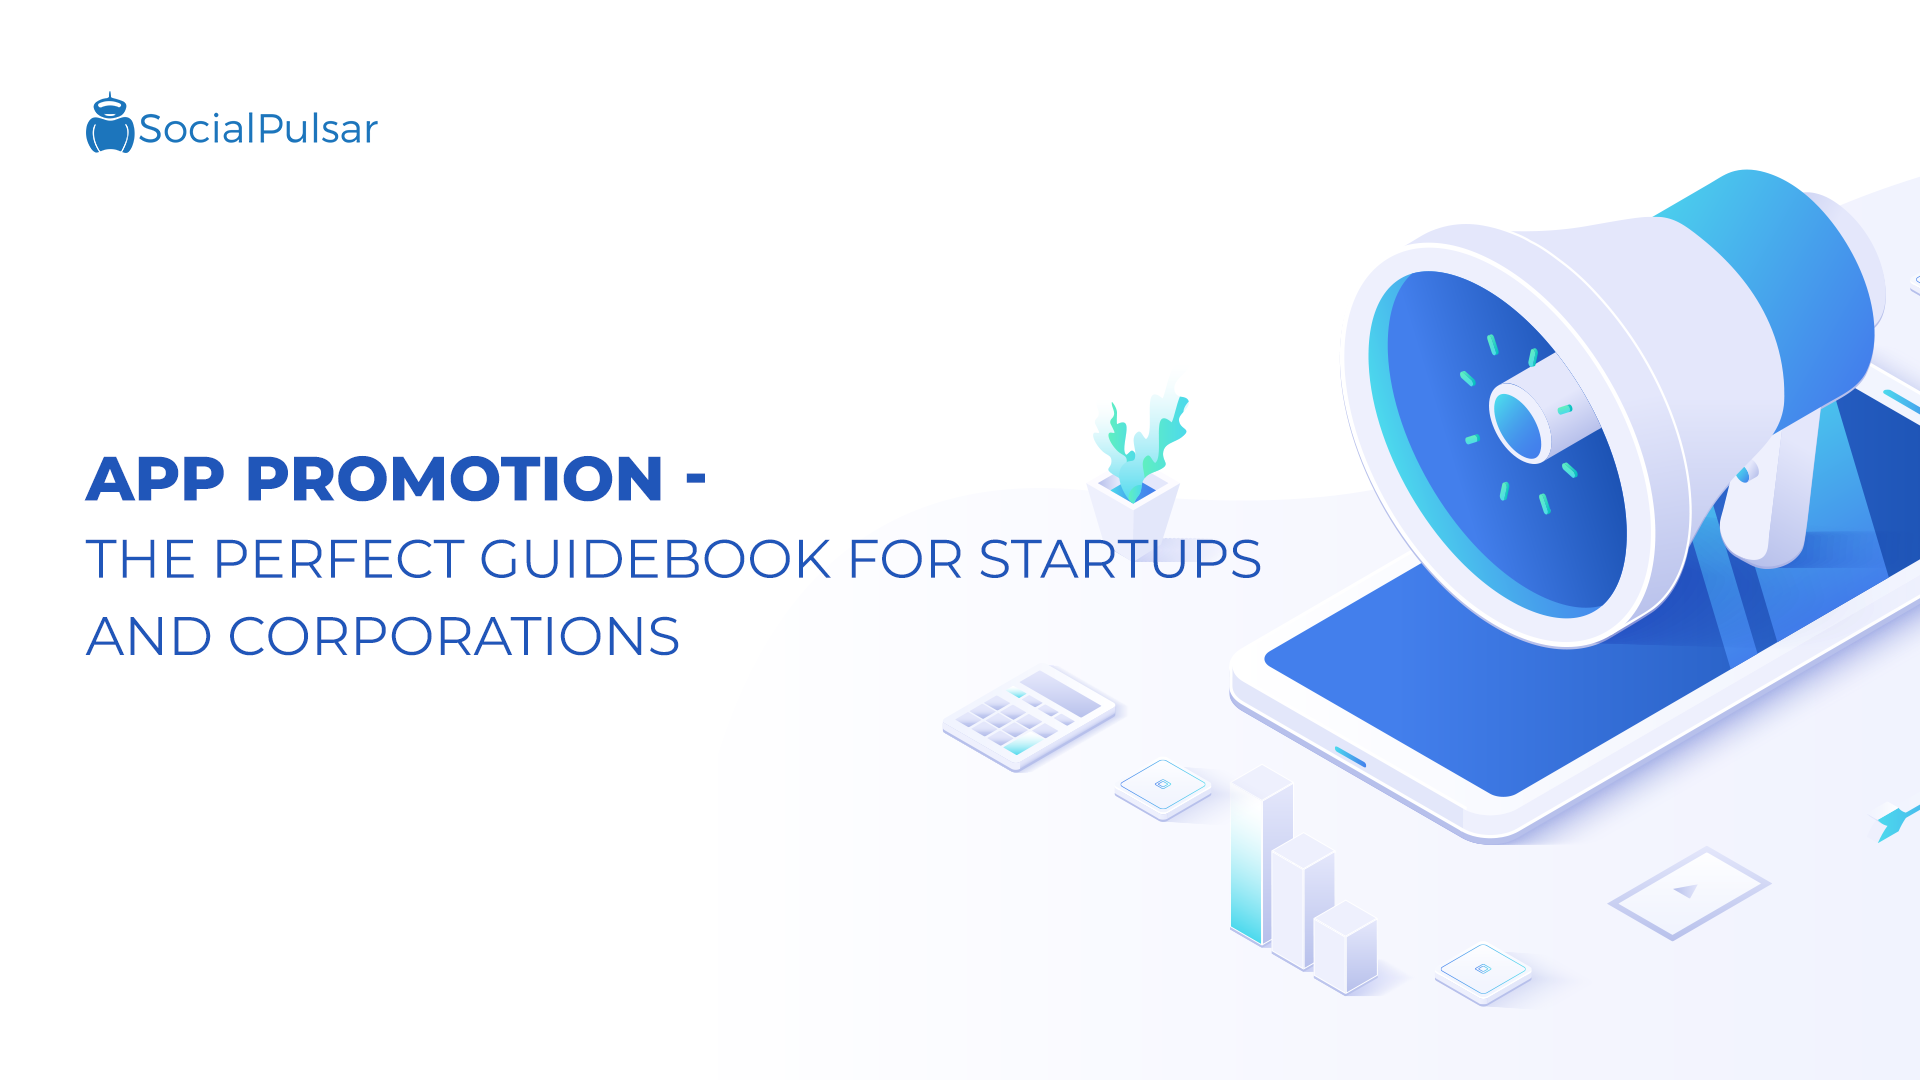 App Promotion – The perfect guidebook for startups and corporations